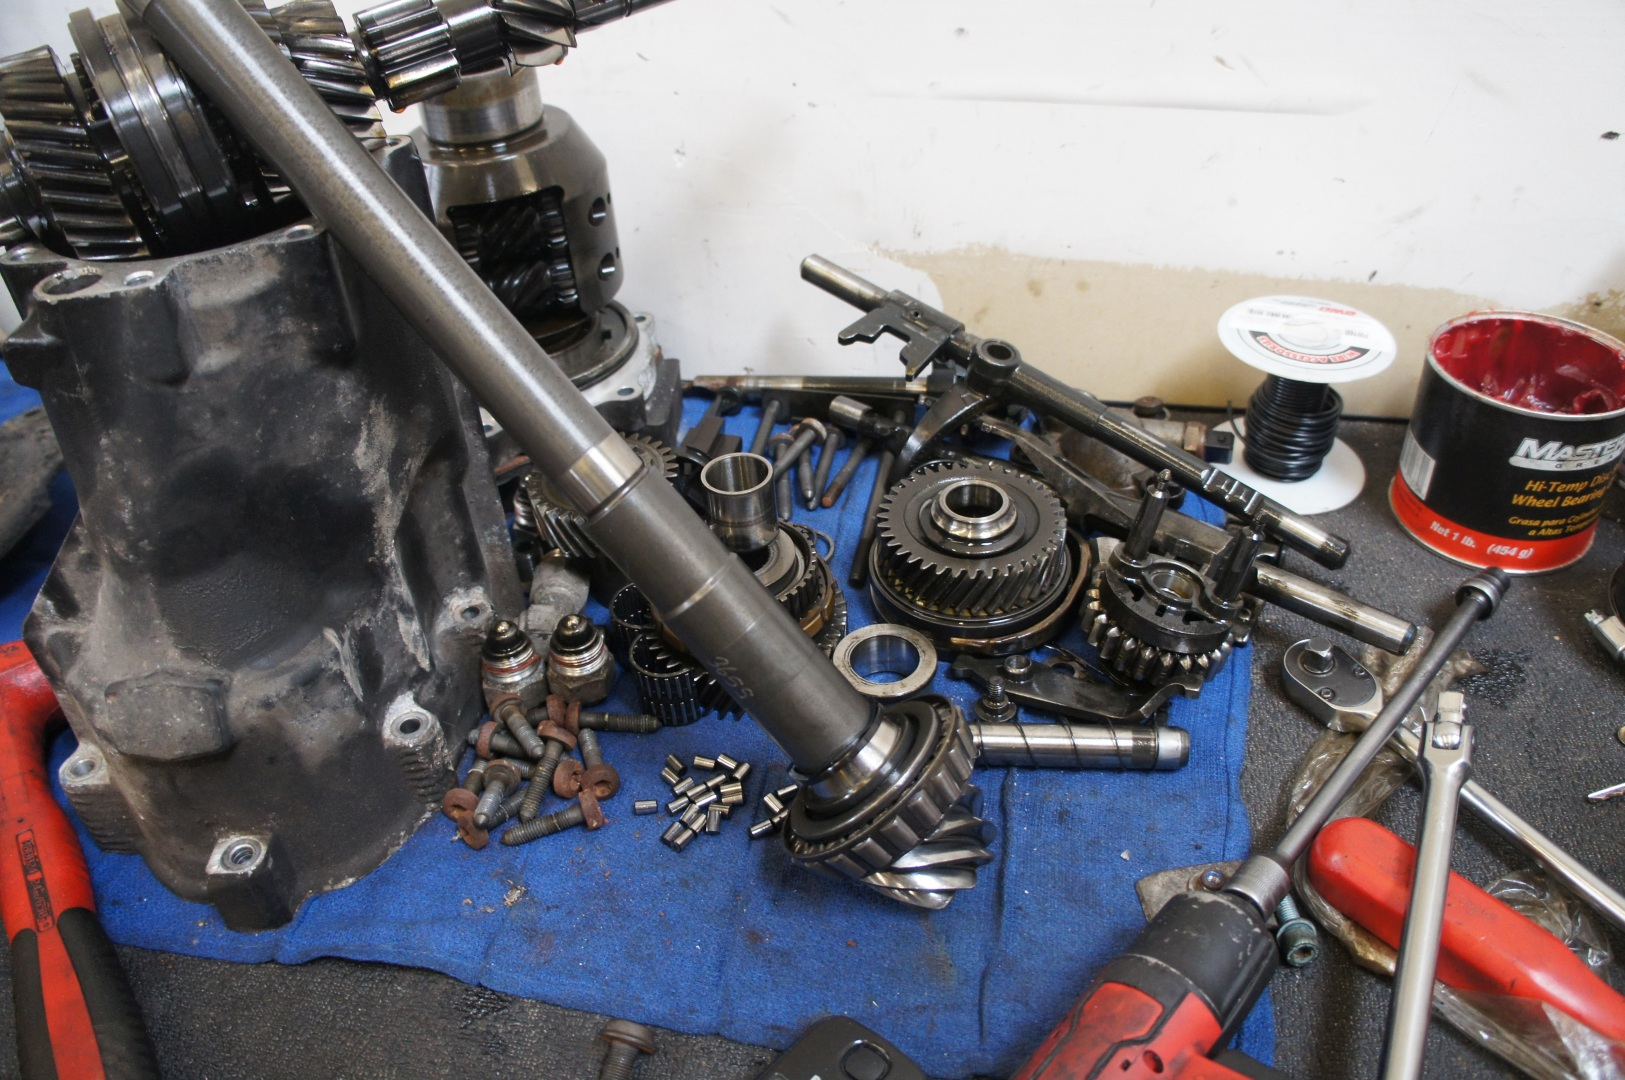 Audi A6 S6 Allroad Tip To 6 Speed Swap Kit: Audis4parts com